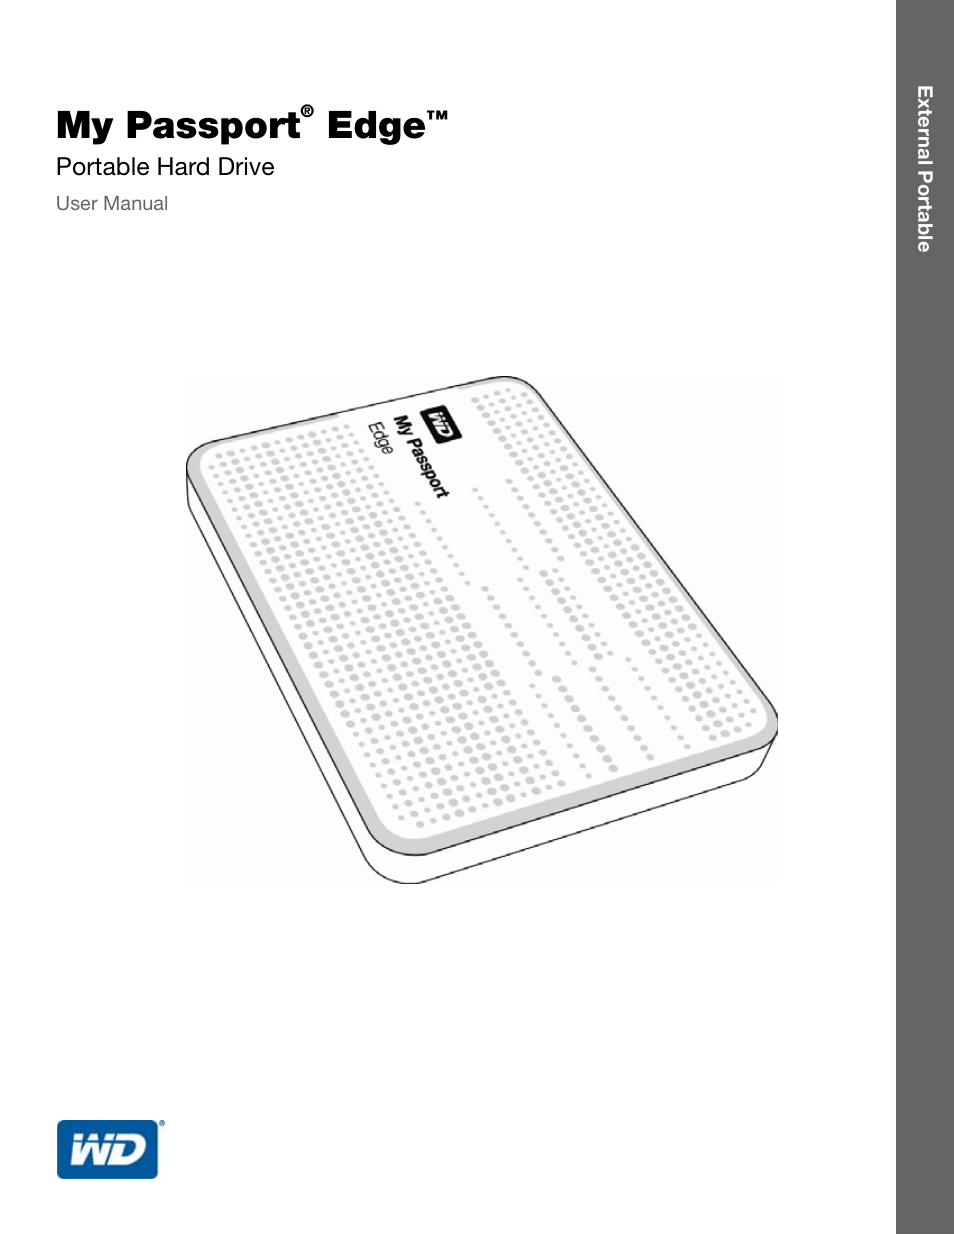 Western Digital My Passport Edge User Manual User Manual